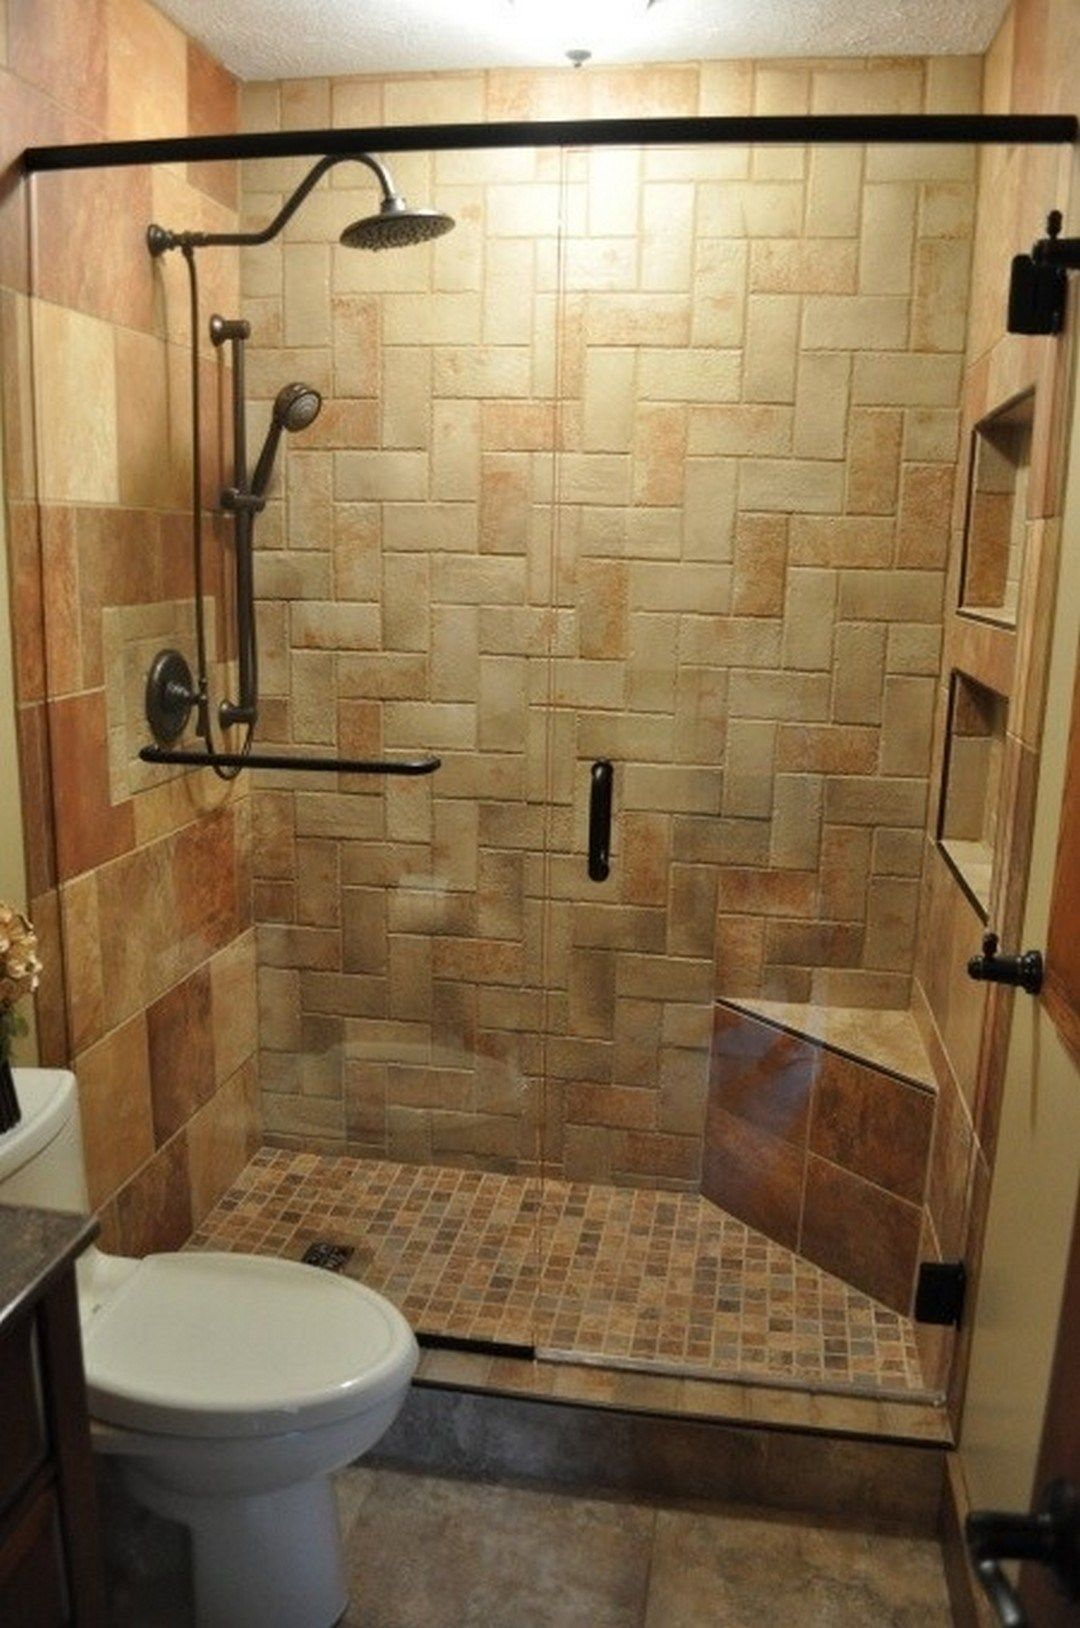 72 tub shower combo. 99 Small Bathroom Tub Shower Combo Remodeling Ideas  72 More Fascinating Contemporary Best inspiration